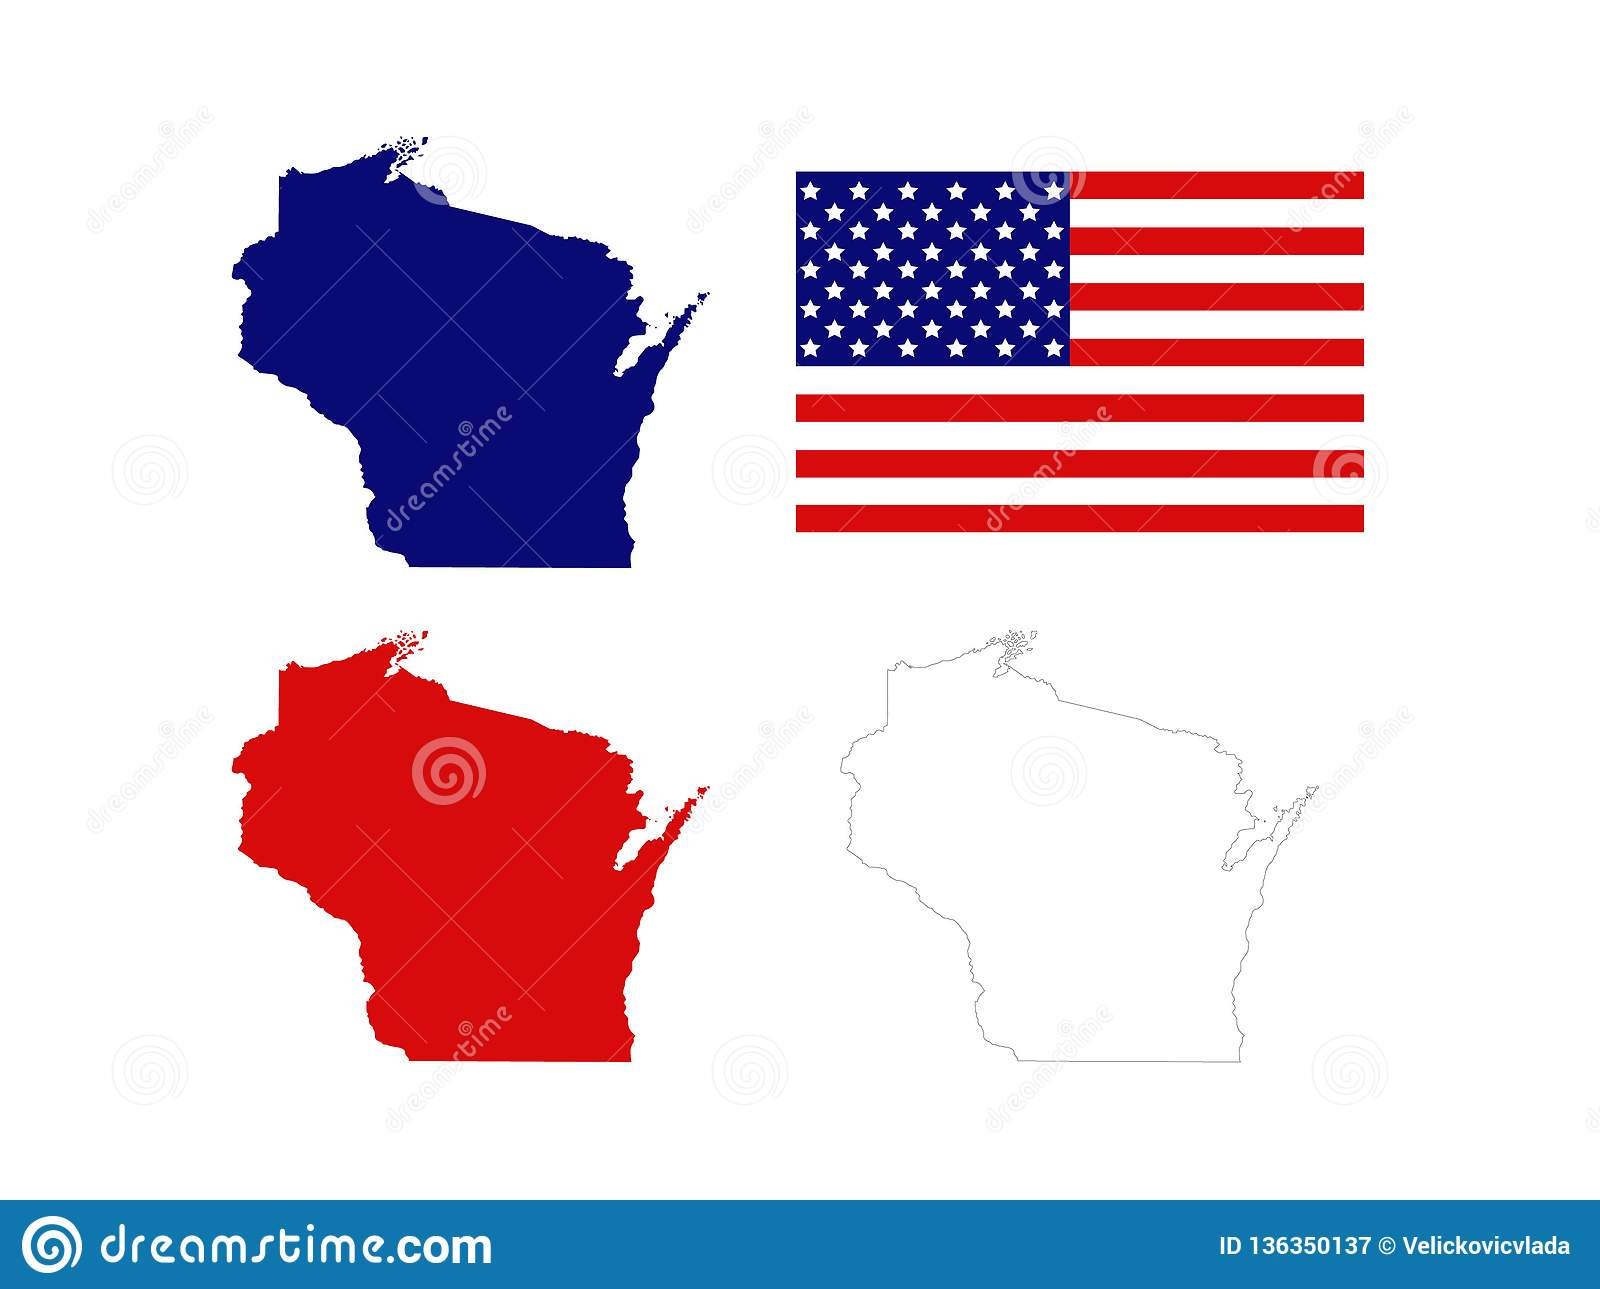 Wisconsin Maps With USA Flag - U.S. State Located In The ... on map of central plains states, map of west usa states, map of central new jersey counties, map of north central states, map of usa states only, map of the usa states, map of south central usa, map of south central us, map of central american states, map of southeastern usa states, map of kansas online, map of north central vermont, map of western usa states, map of north central usa, the central states, map of central nevada, big map of usa states, map of north central u s, map of lower usa states, central us states,